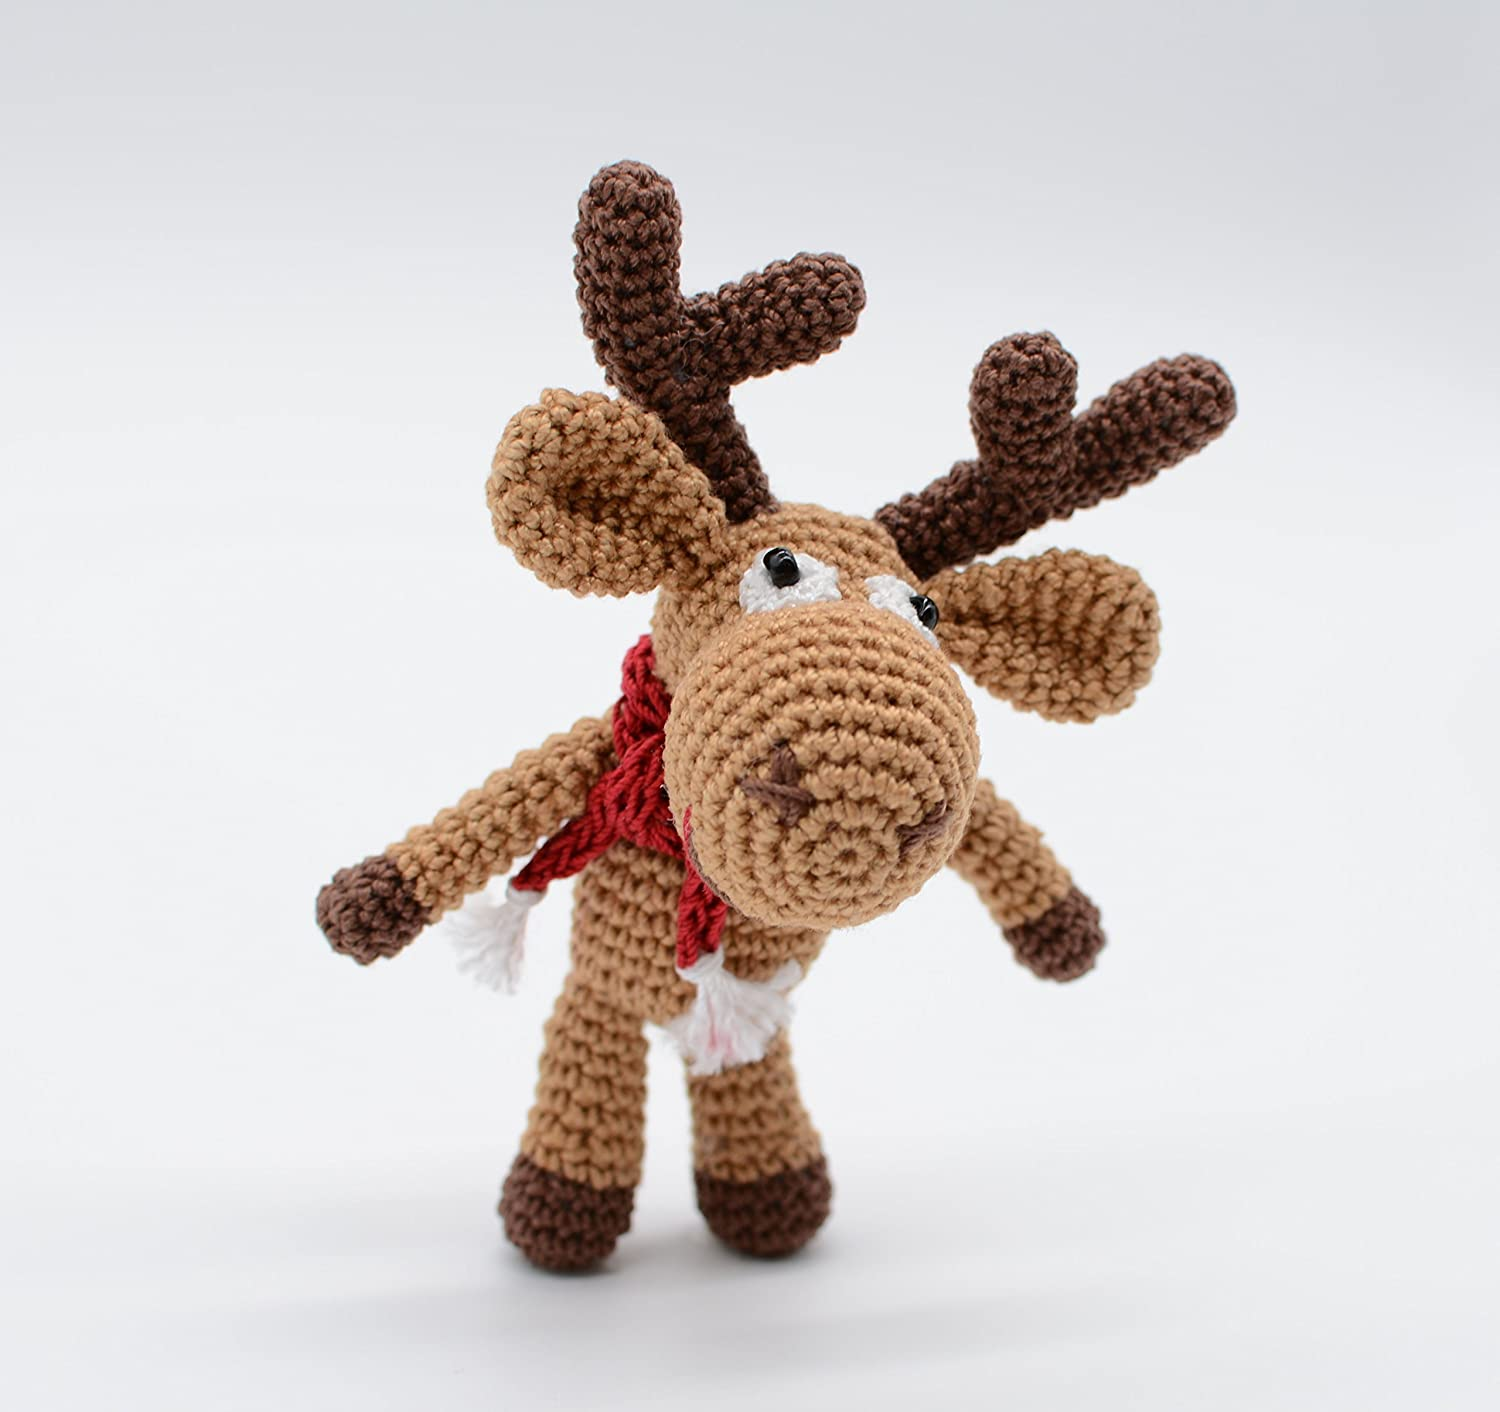 Crochet Adorable Amigurumi Reindeer Part 1 of 3 DIY Video Tutorial - YouTube | 1412x1500